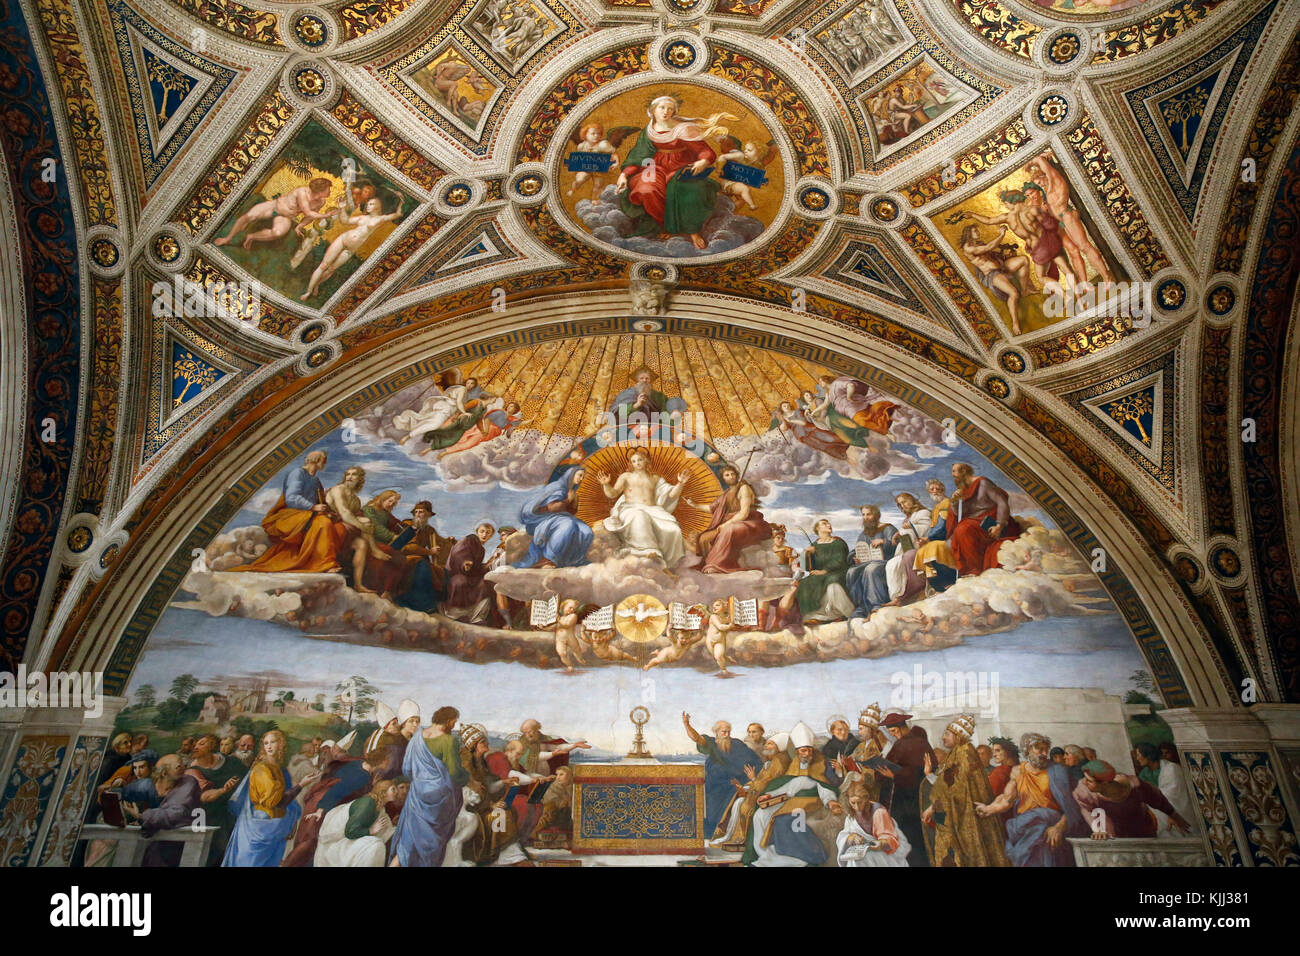 Vatican museums, Rome. Raphael's rooms. Disputation of the Holy Sacrament.  Italy. - Stock Image